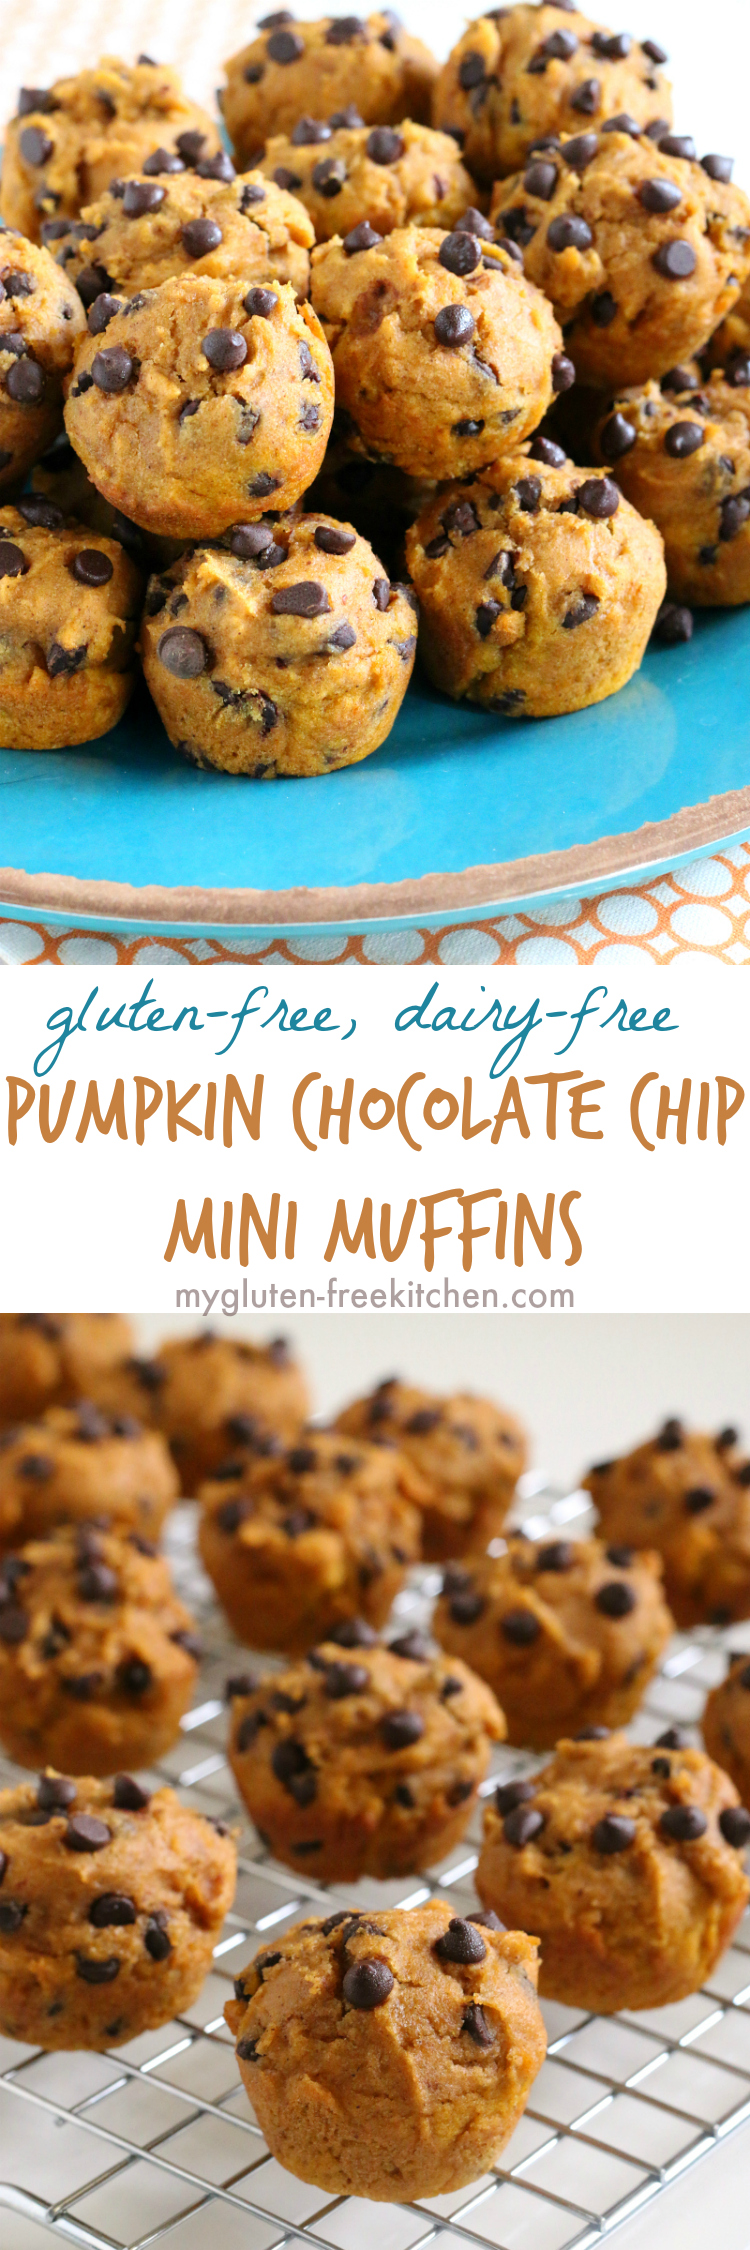 Gluten-free Dairy-free Pumpkin Muffins with Chocolate Chips. Easy, freezer friendly recipe that's nut-free too!